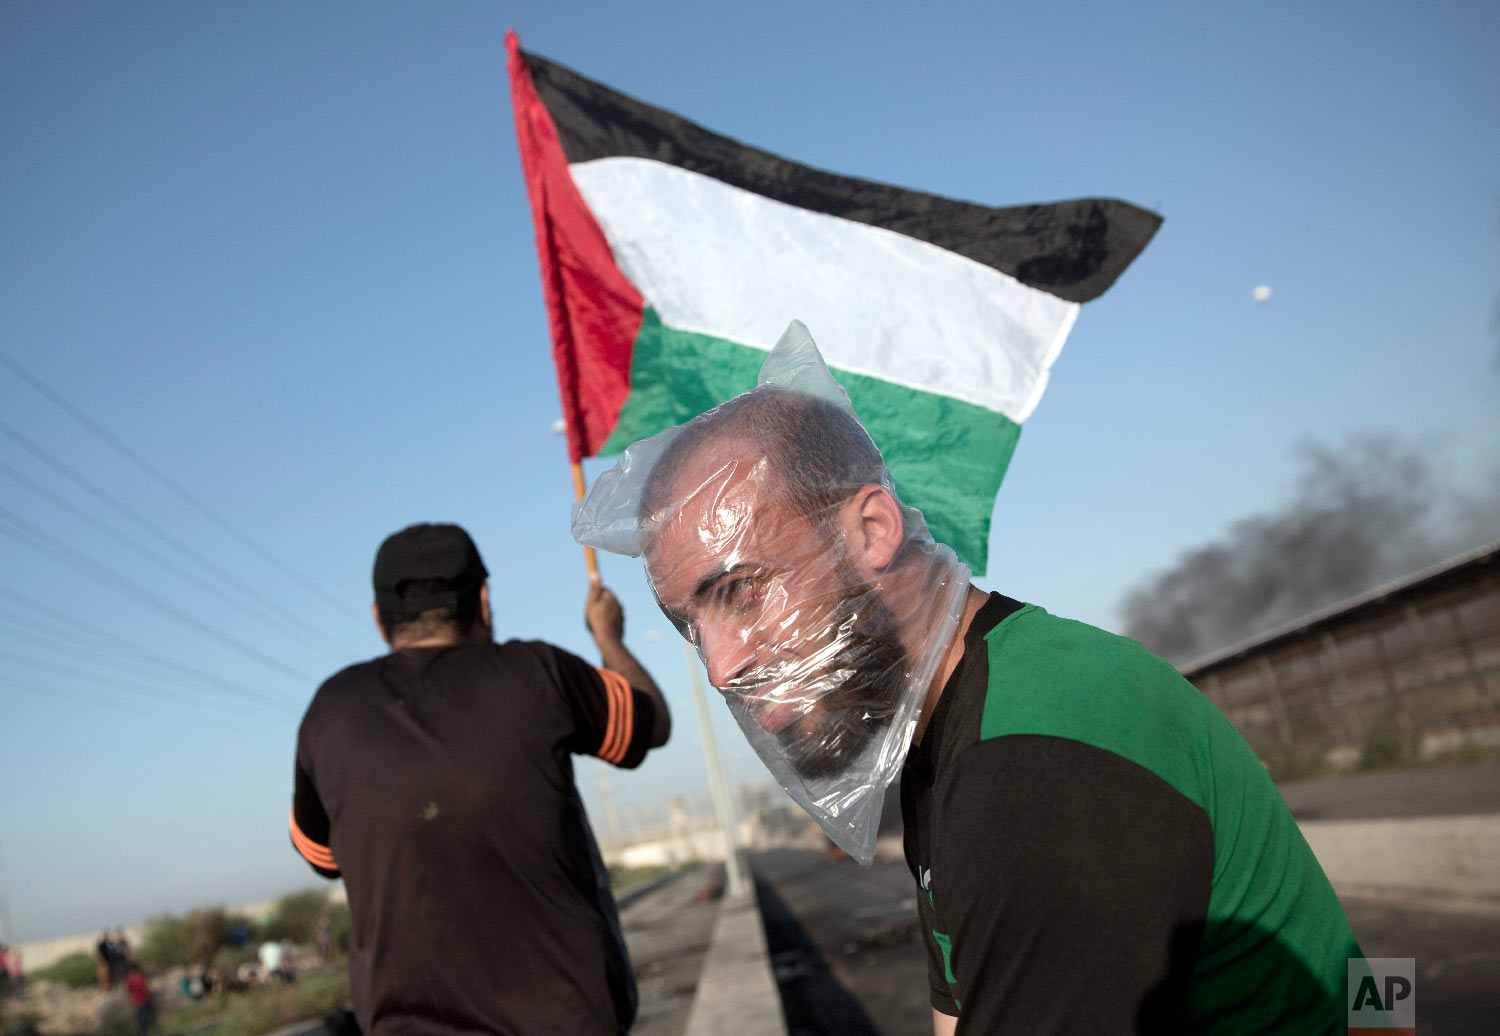 A Palestinian protester wears a plastic bag on his head as a protection from teargas as another waves a national flag during a protest at the entrance of Erez border crossing between Gaza and Israel, in the northern Gaza Strip, Sept. 26, 2018. (AP Photo/Khalil Hamra)